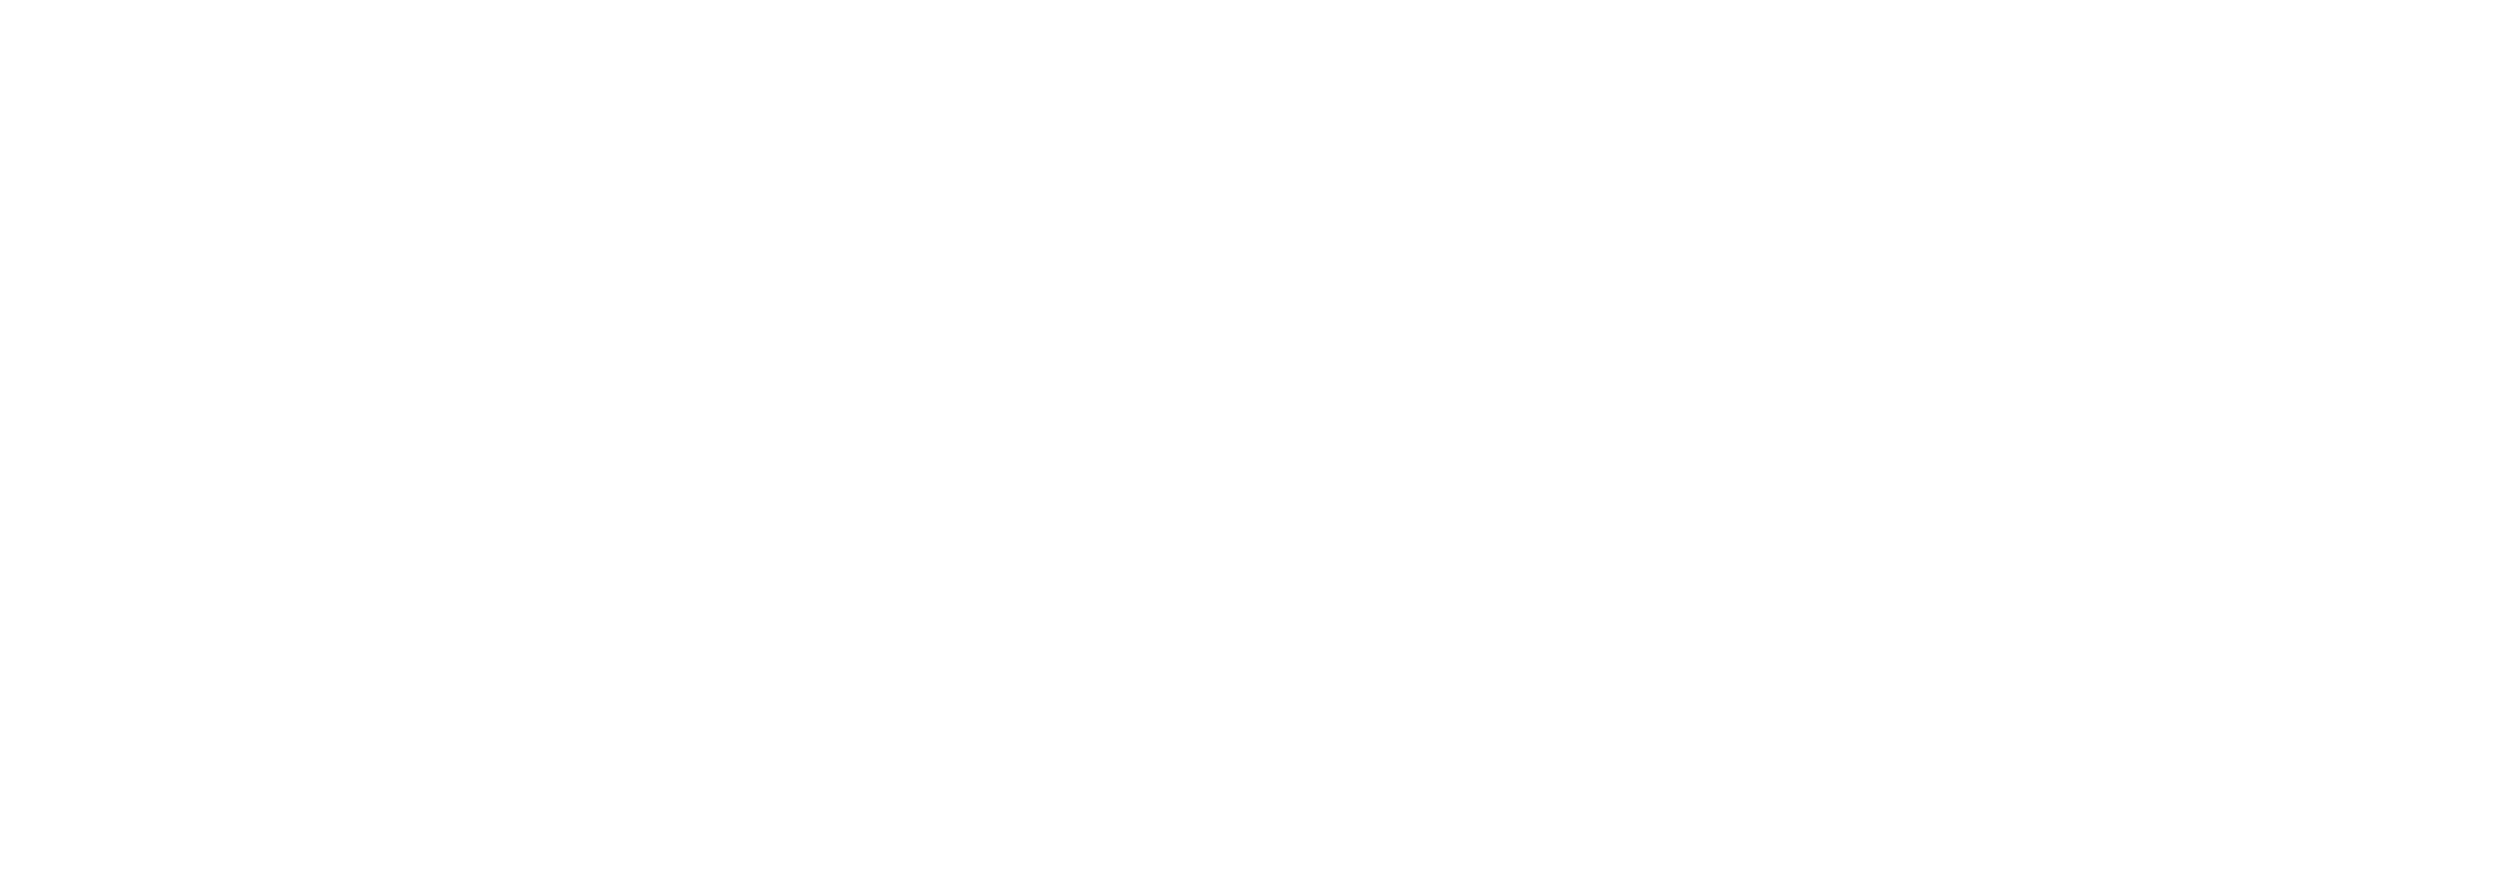 MainHall logo white - No Bells - No Background.png